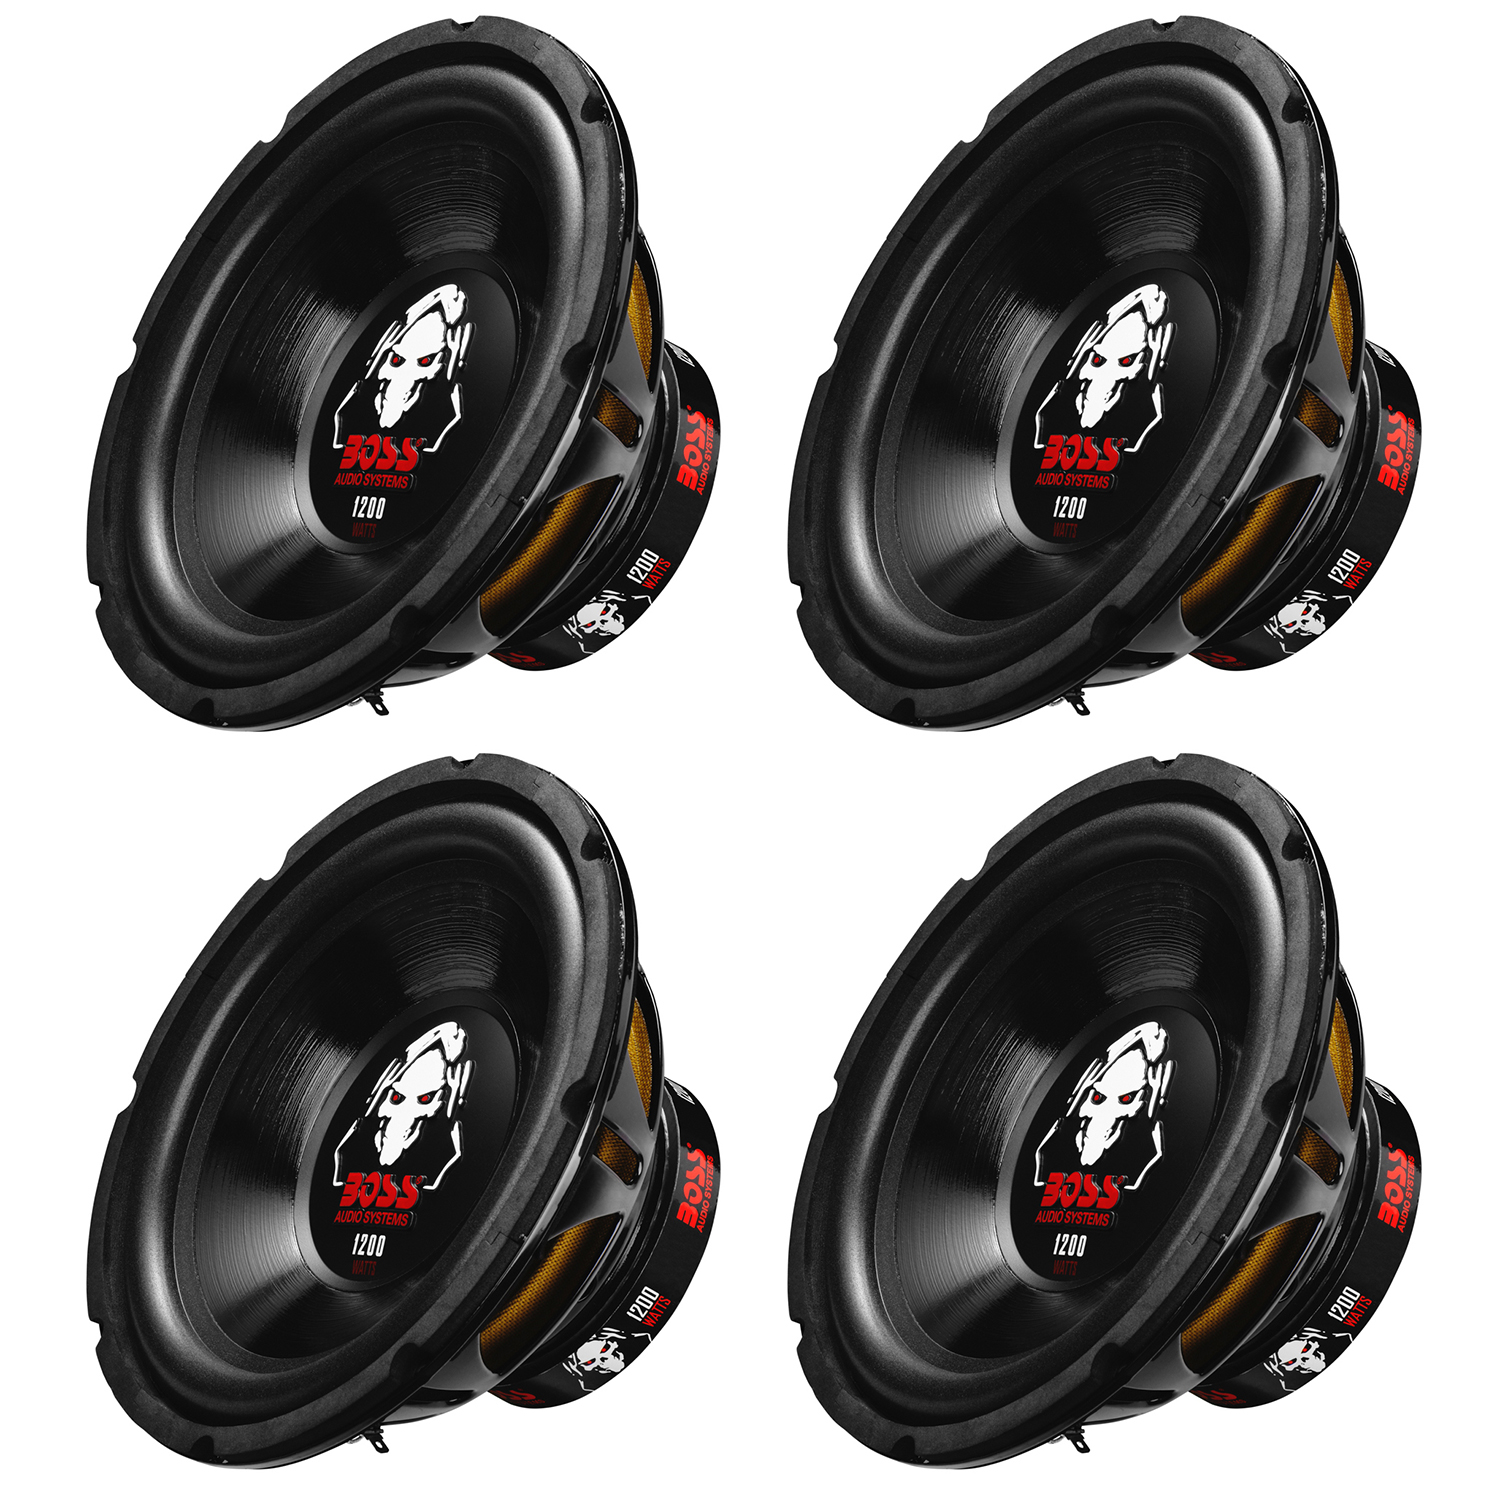 Boss Audio 10-Inch Single Voice Coil 1200 Watt Max Subwoofer (4 Pack) | P10SVS